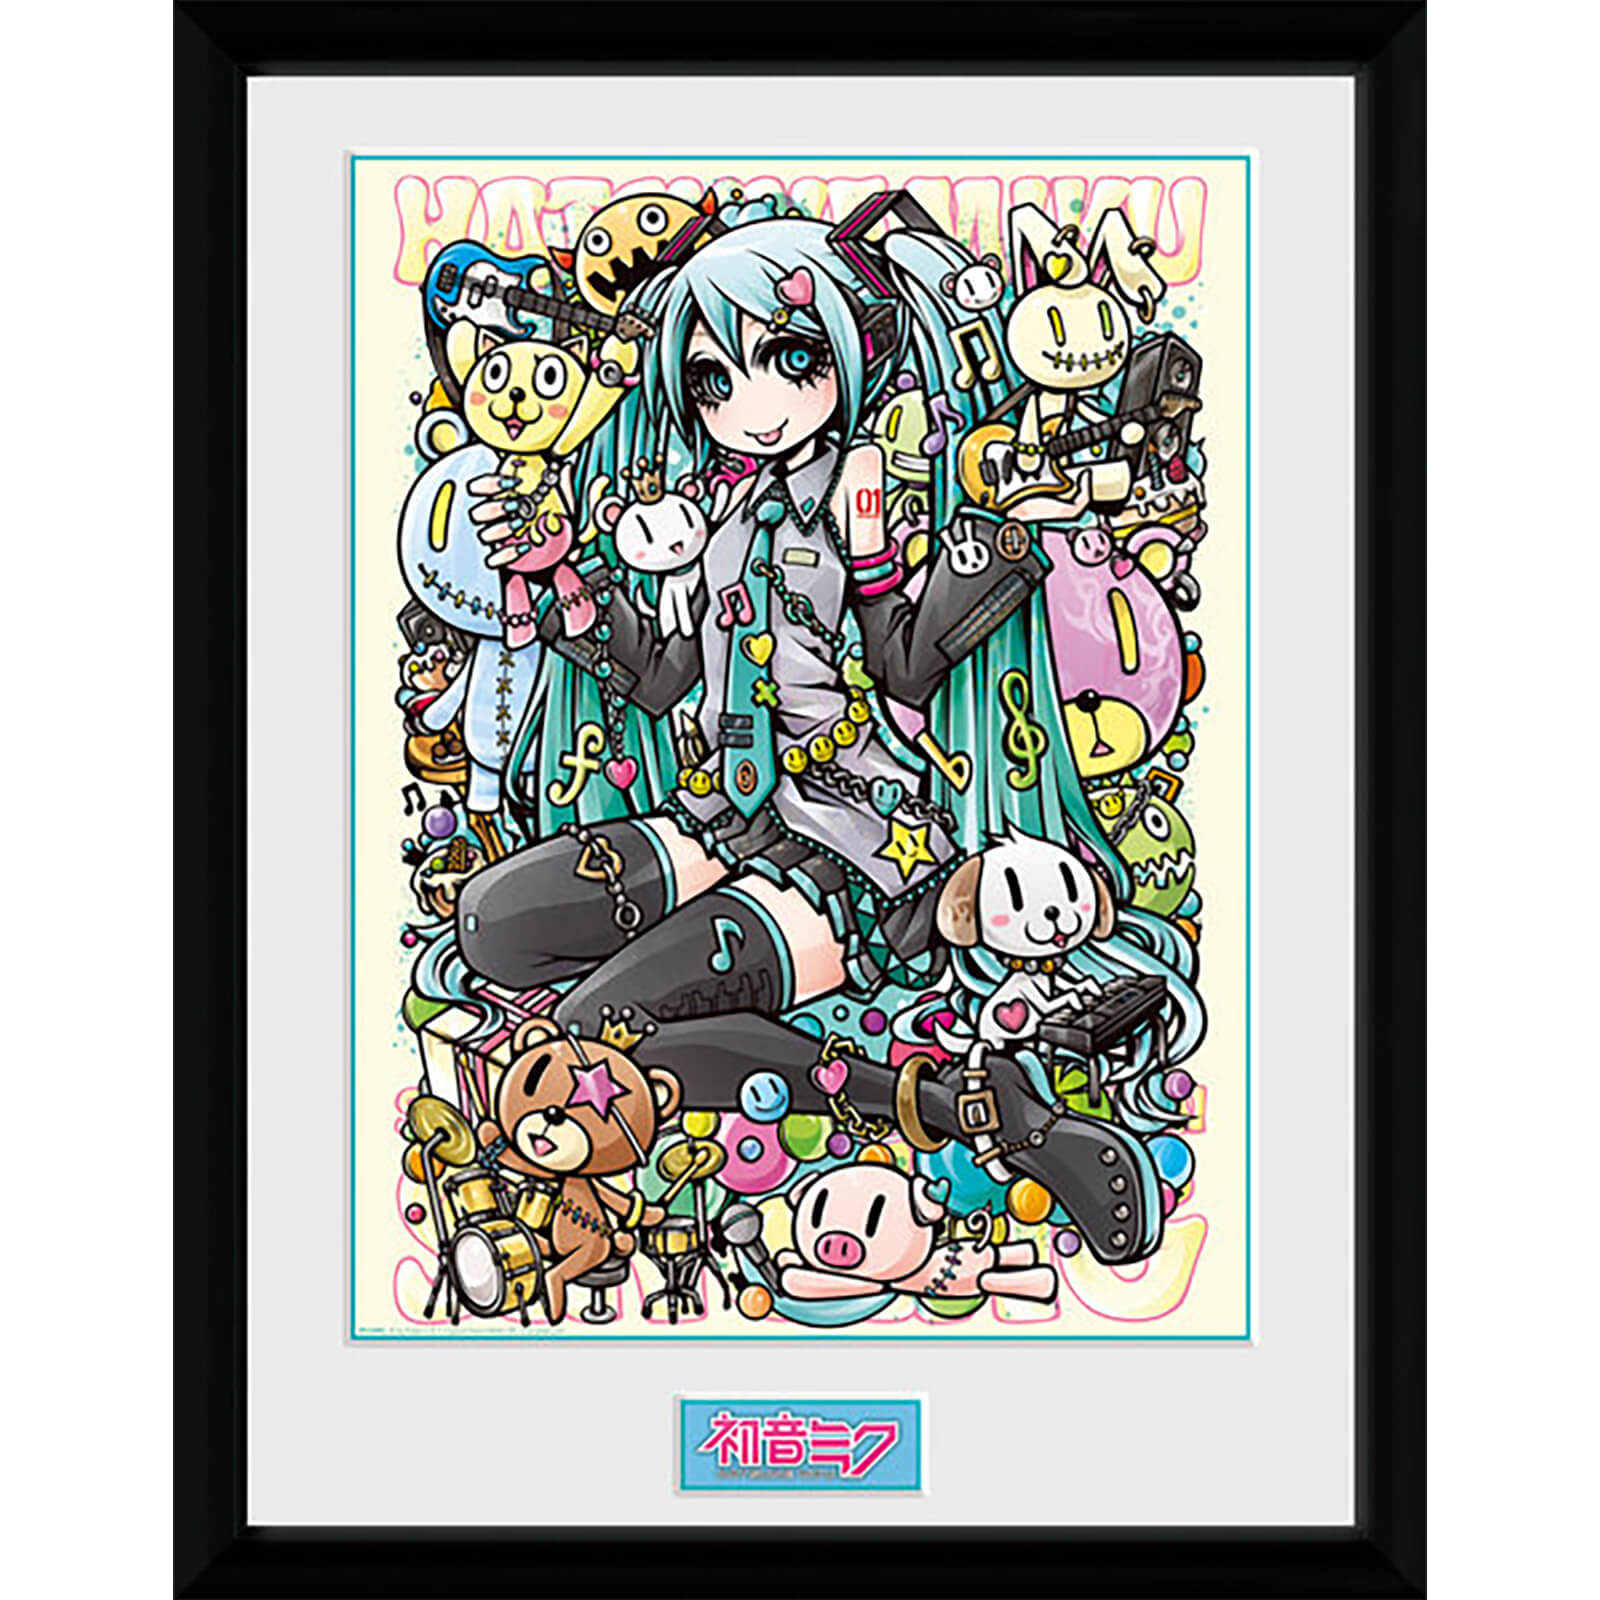 Hatsune Miku Kawaii - 16 x 12 Inches Framed Photograph